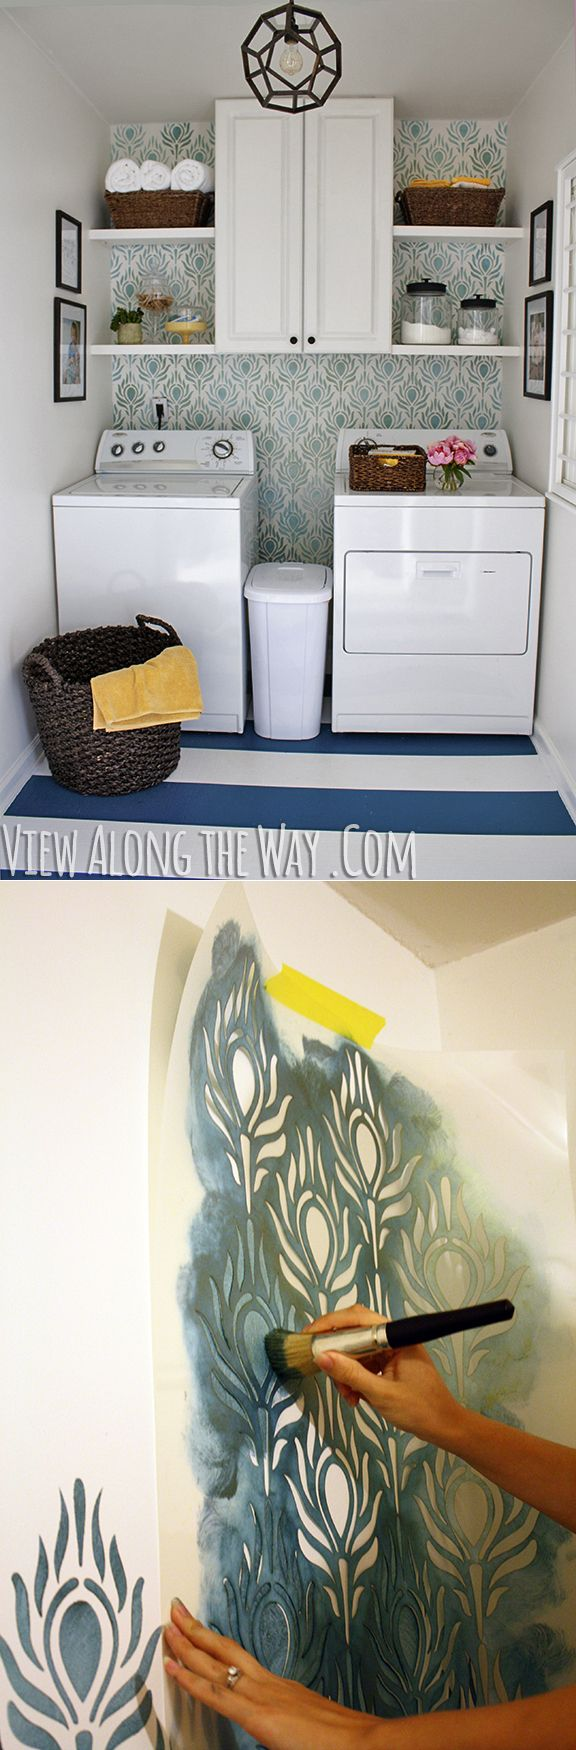 diy how to wall stenciling httpwwwviewalongtheway - Design Stencils For Walls